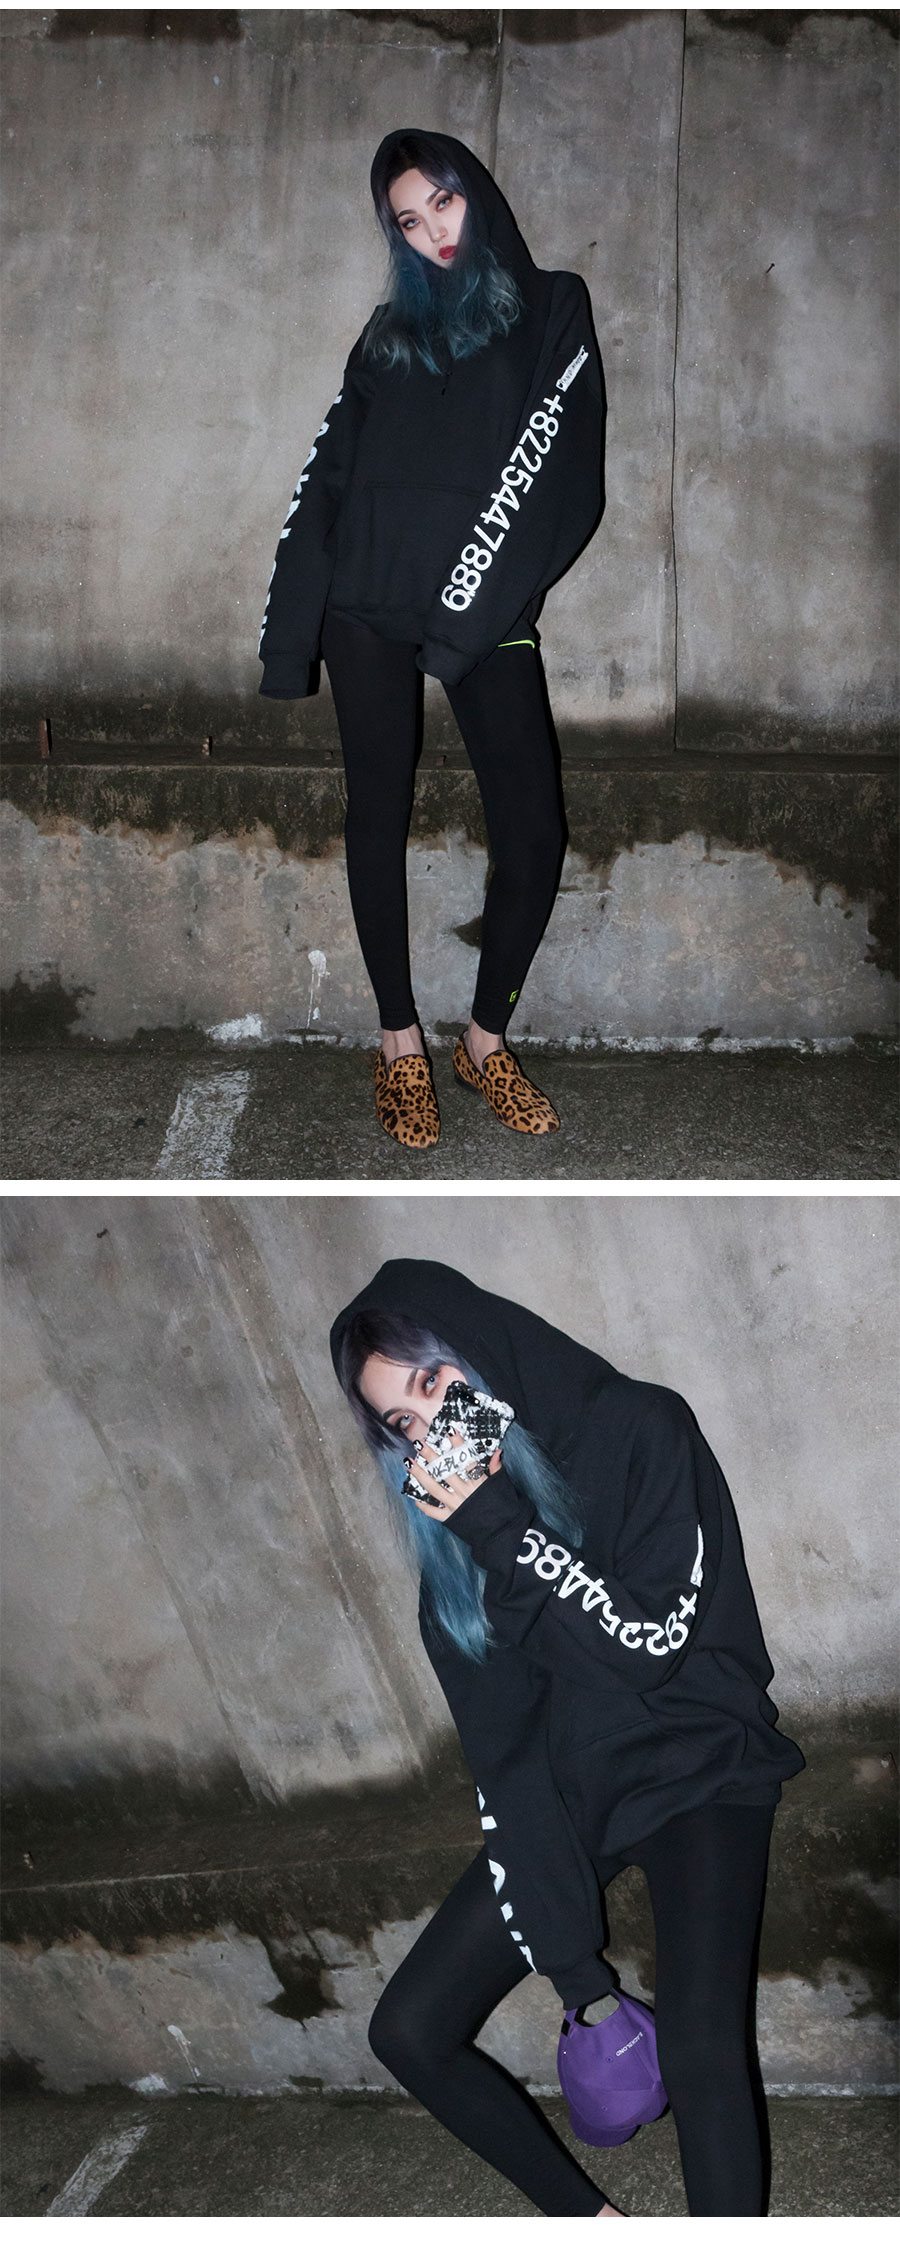 블랙블론드 BLACKBLOND - BBD Graffiti Number Hoodie (Black)